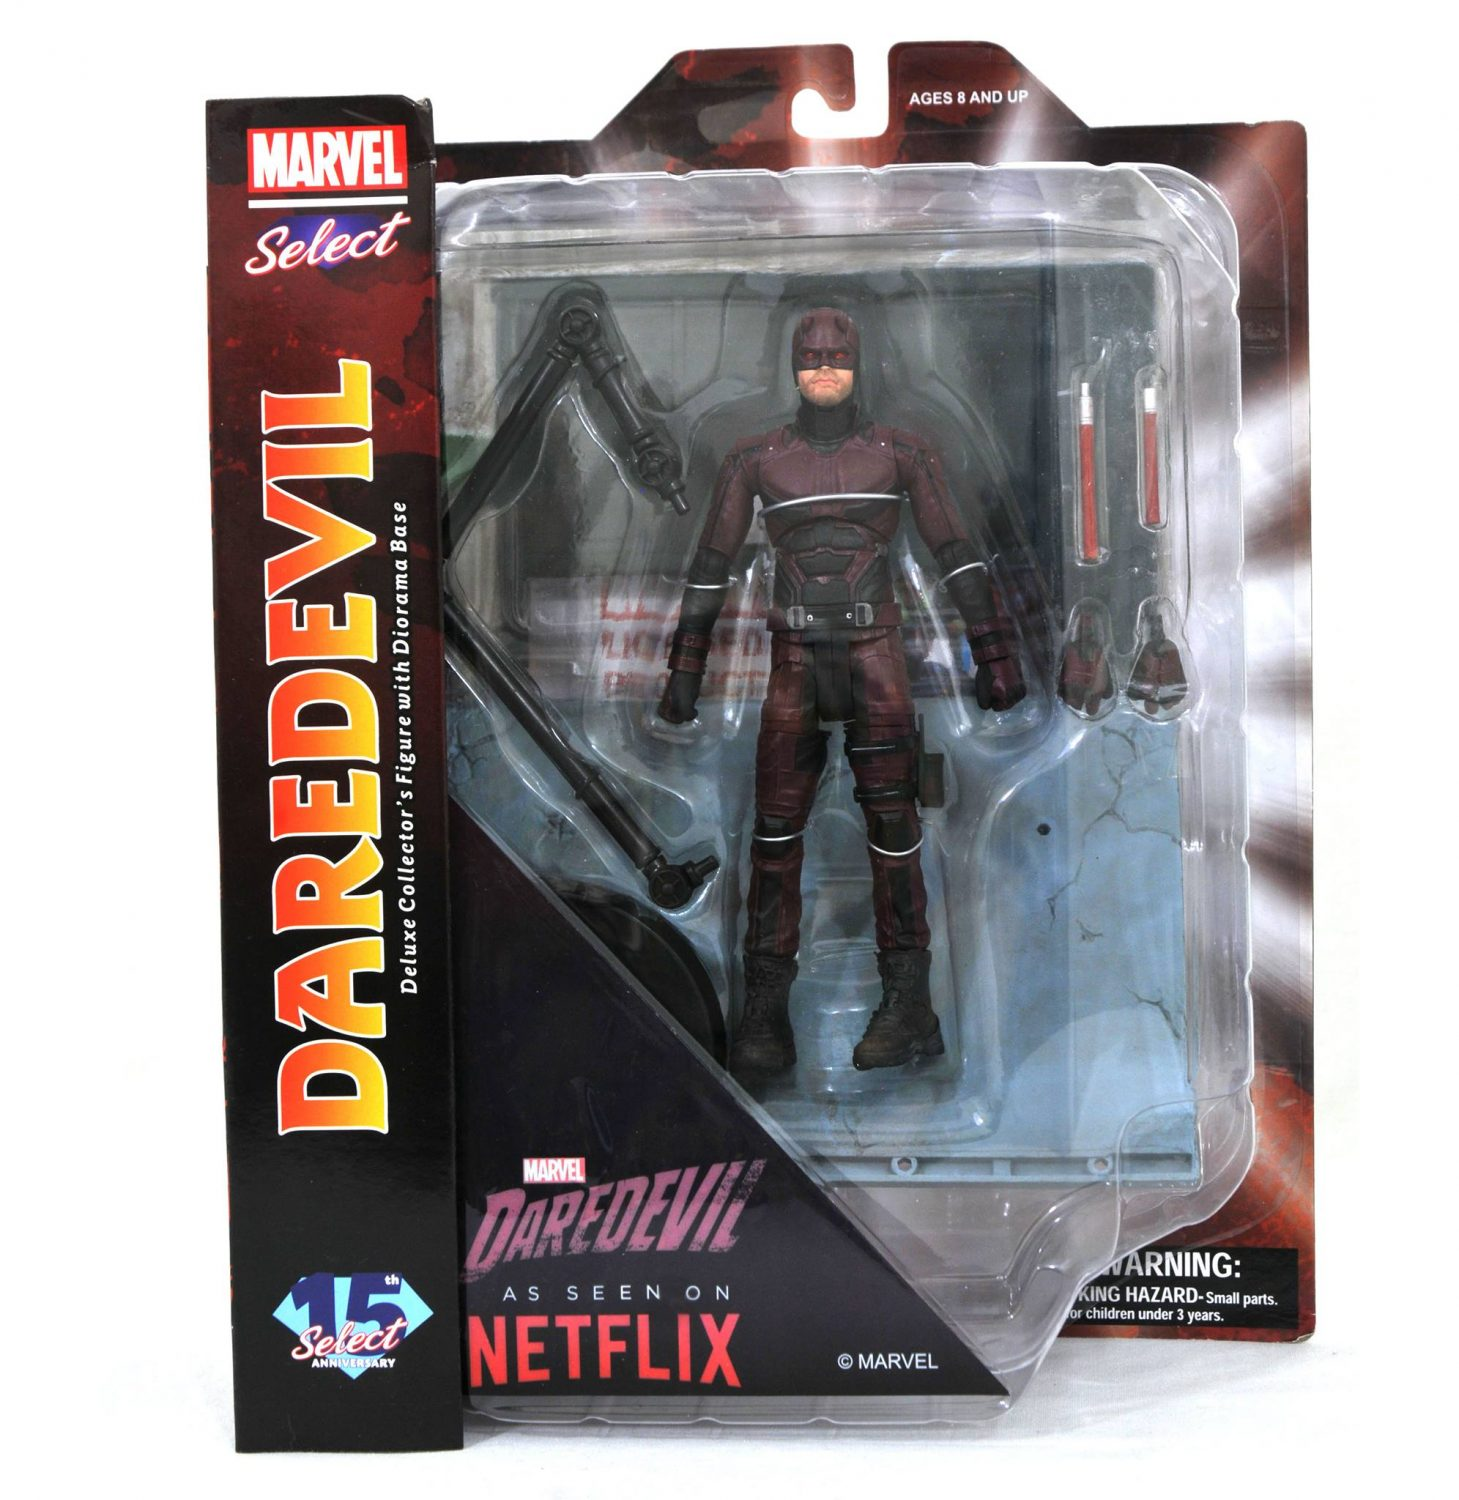 Diamond Select Toys Marvel Select Netflix Daredevil Figure In Packaging